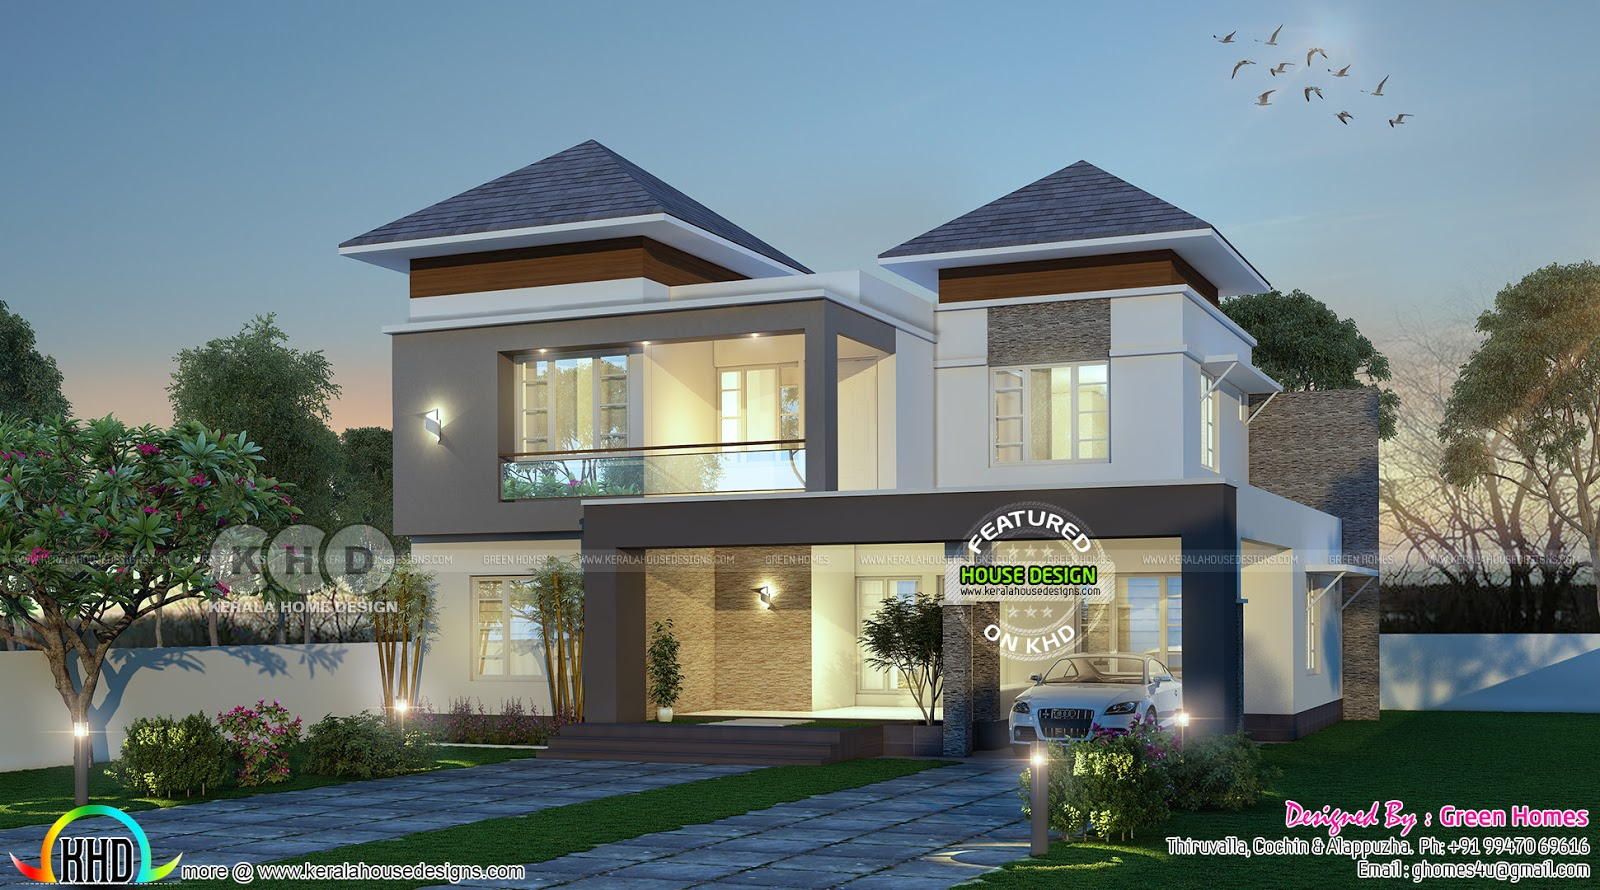 latest house designs 1750 square feet 4 bedroom double floor new modern home 2550 square feet modern 4 bedroom home plan